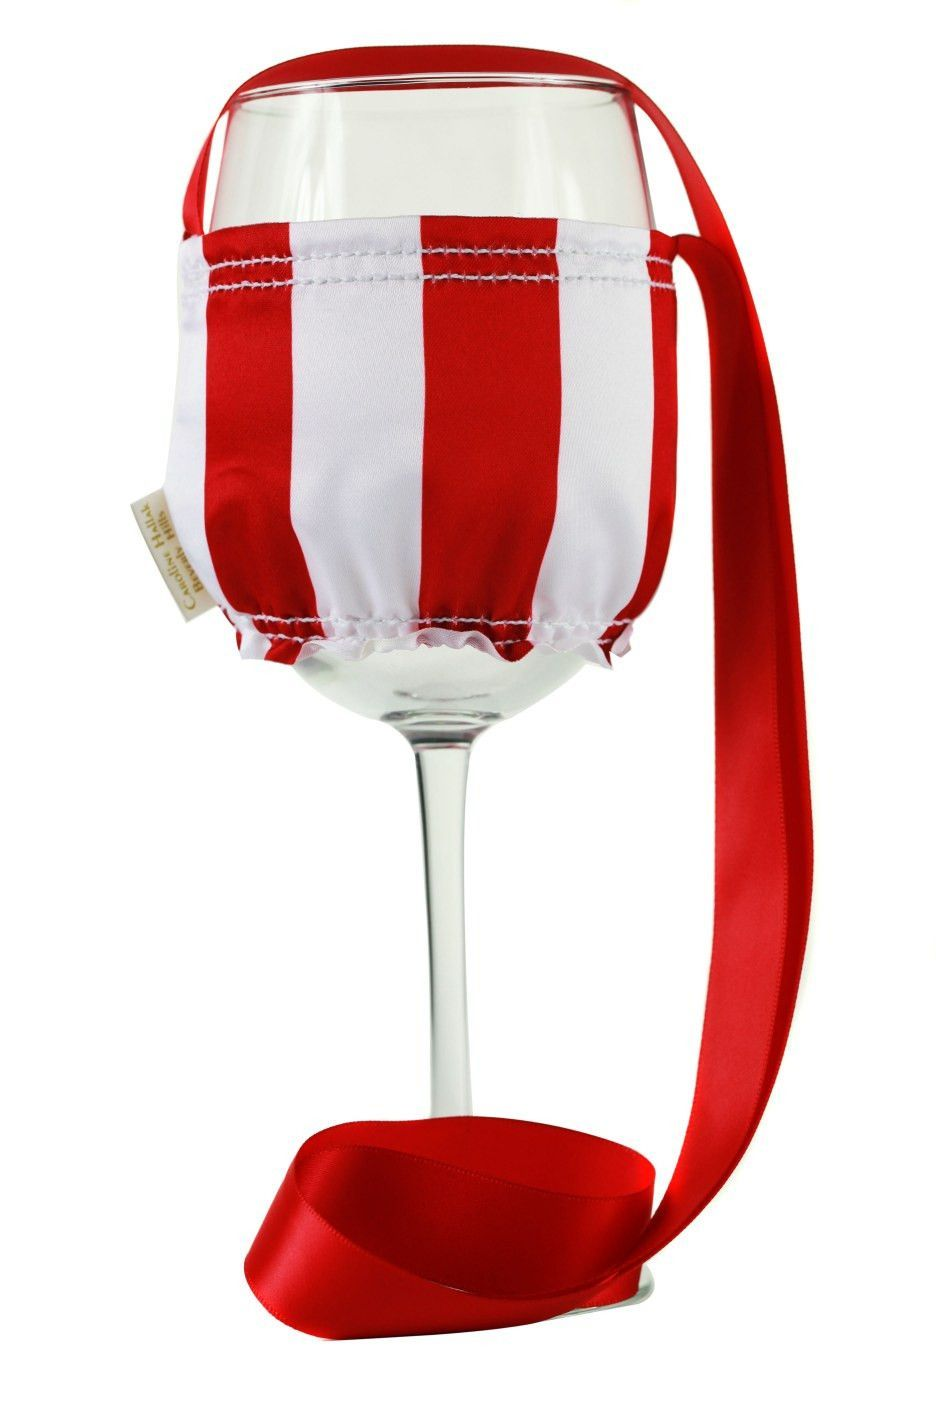 Pin By Billie Humbles On Sewing Ideas Wine Collection Large Wine Glass Wine